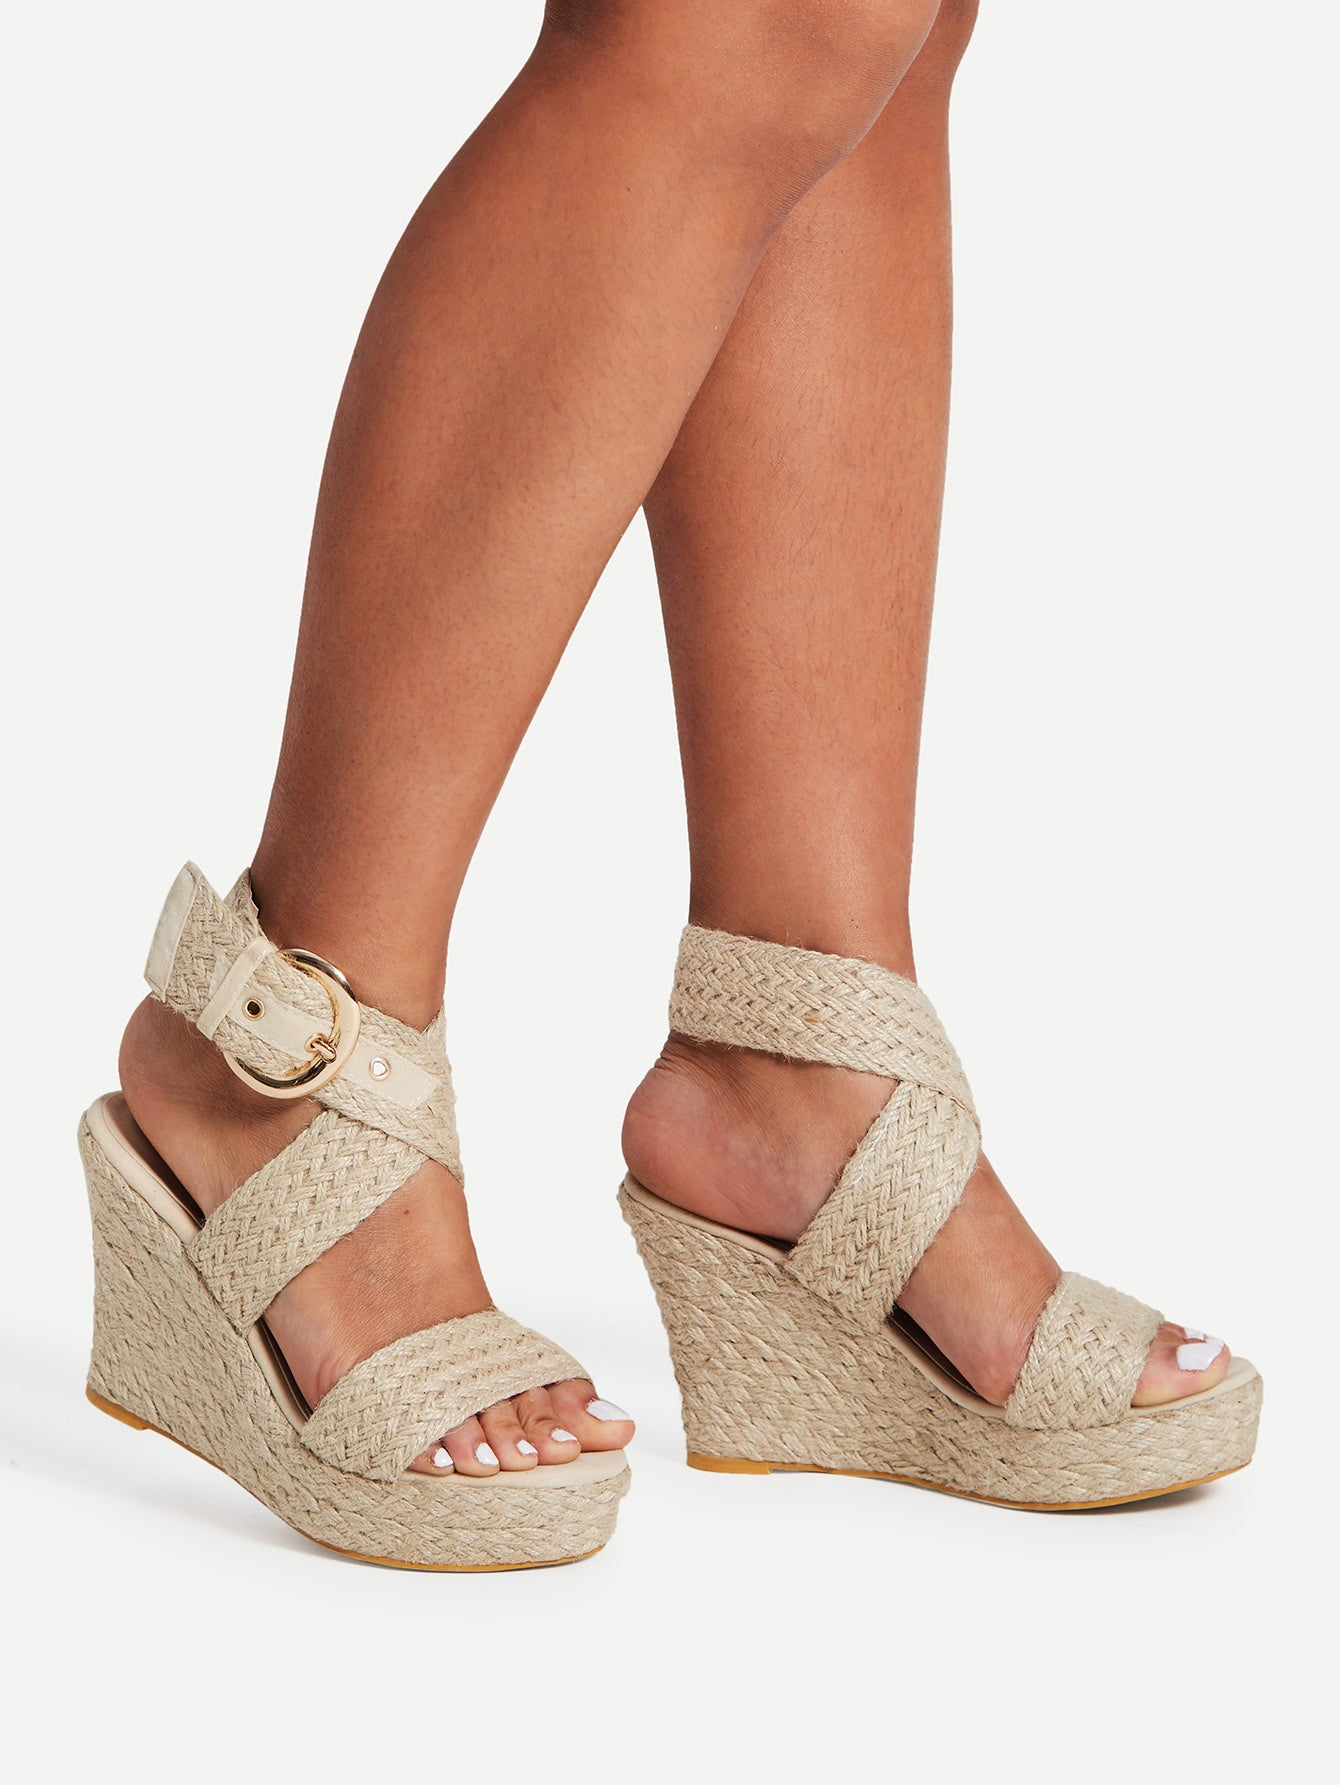 Braided Design Criss Cross Wedge Sandal Heels